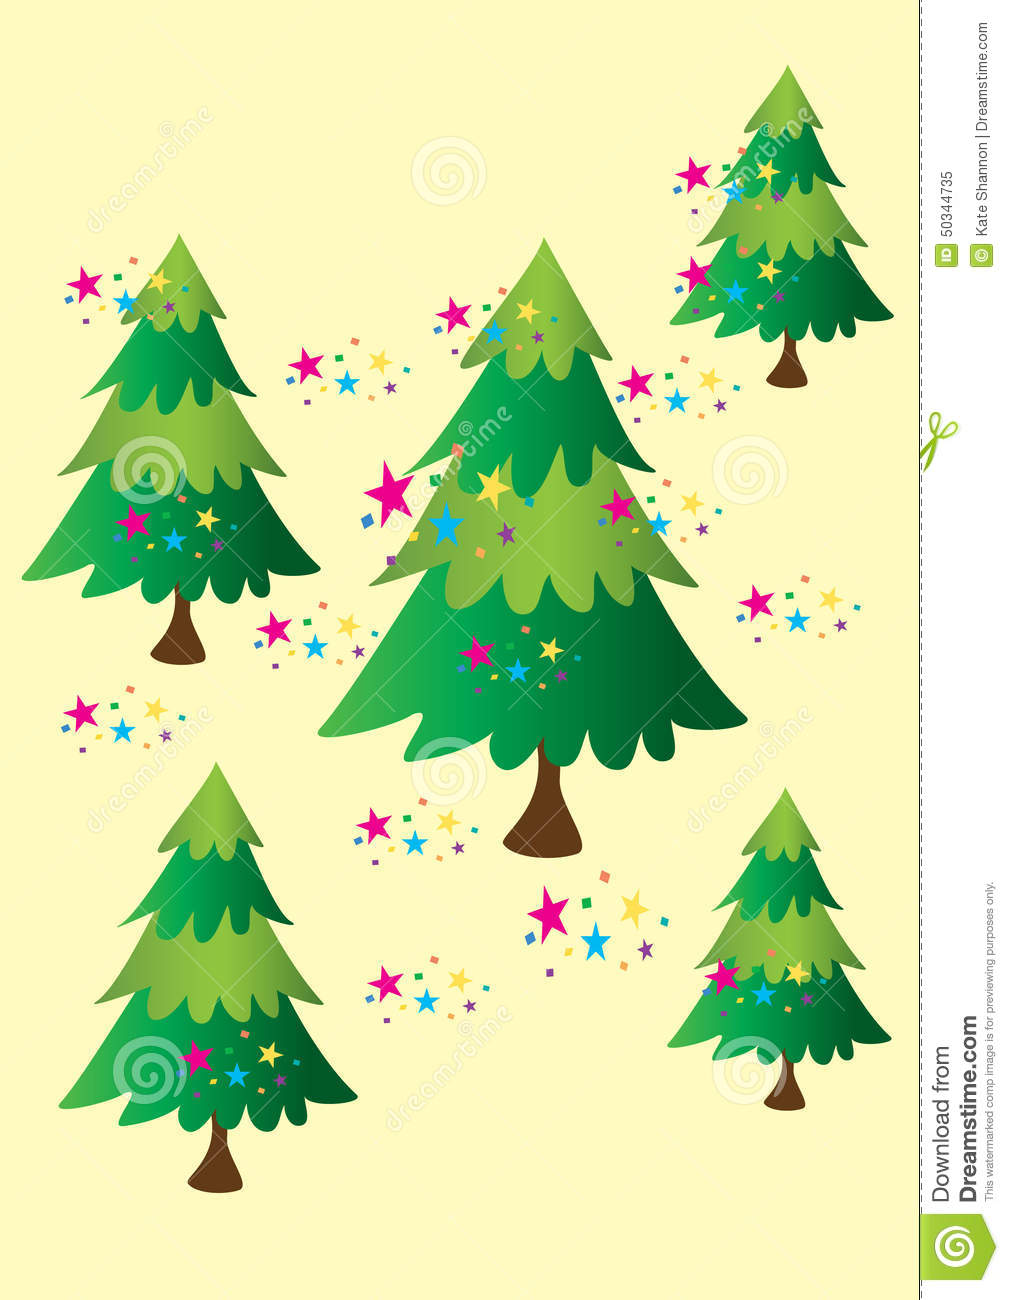 Five Christmas Trees stock vector. Illustration of forest - 50344735